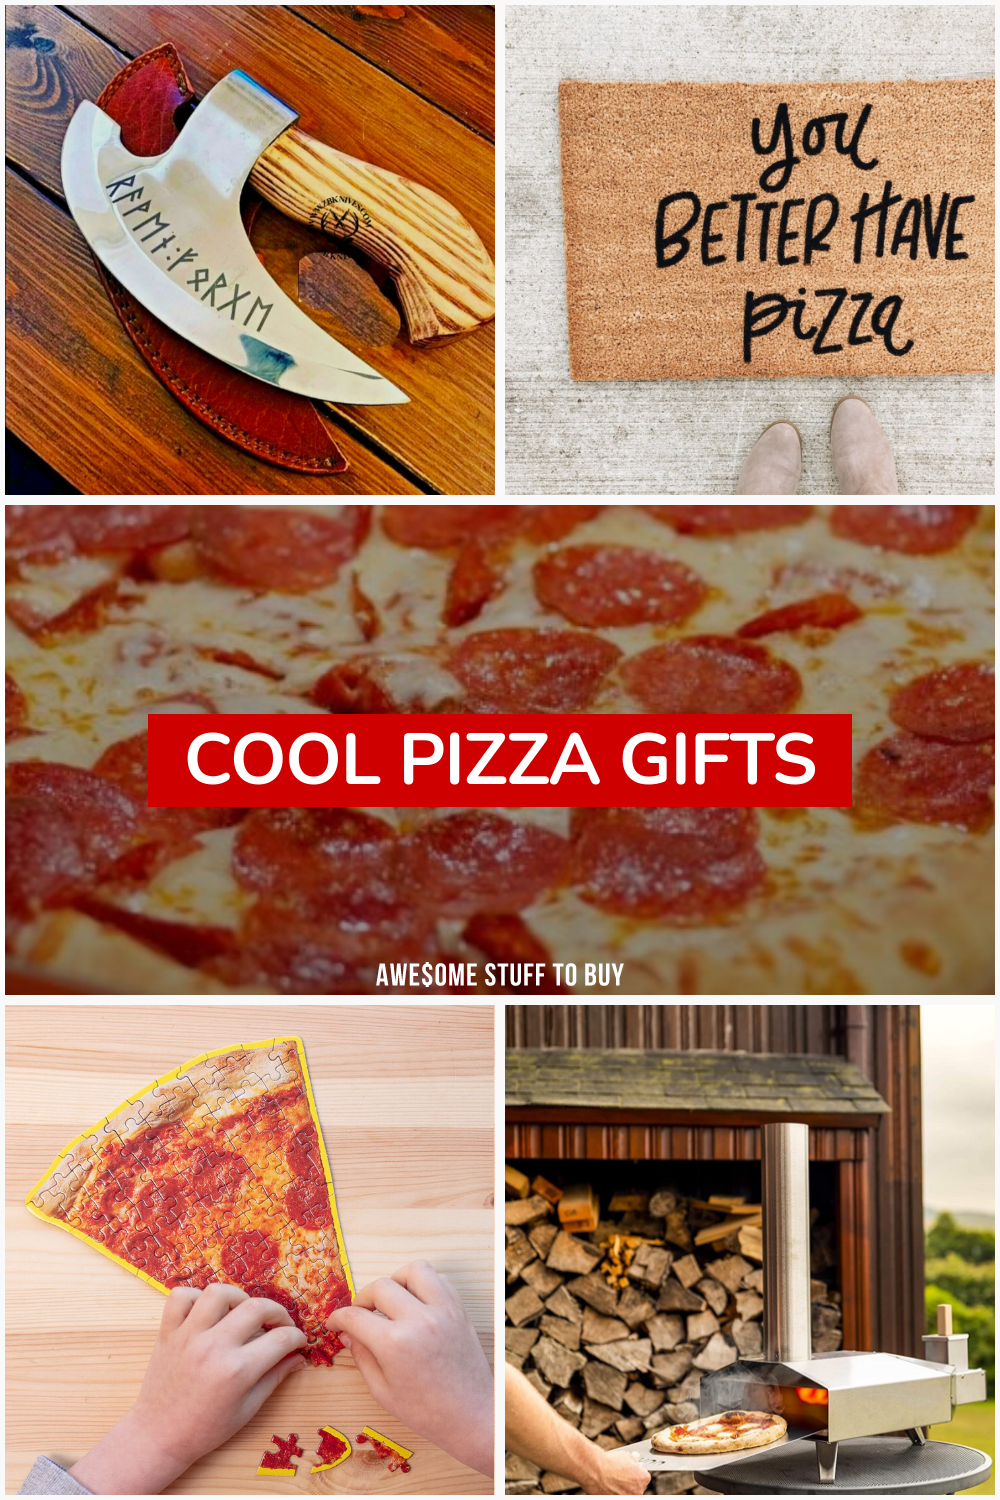 Cool Pizza Gifts // Awesome Stuff to Buy